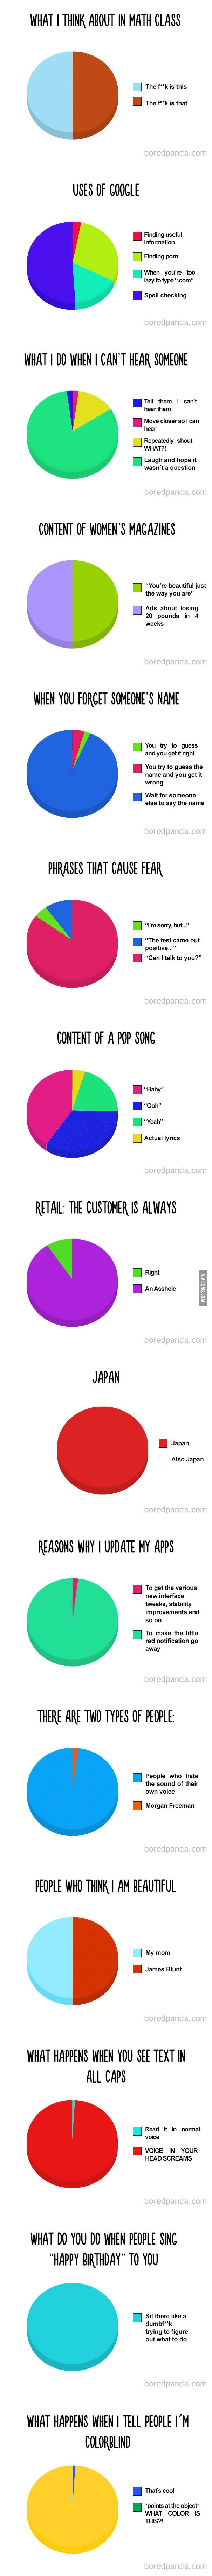 These pie charts are so true, especially the one when people are singing happy birthday to me.